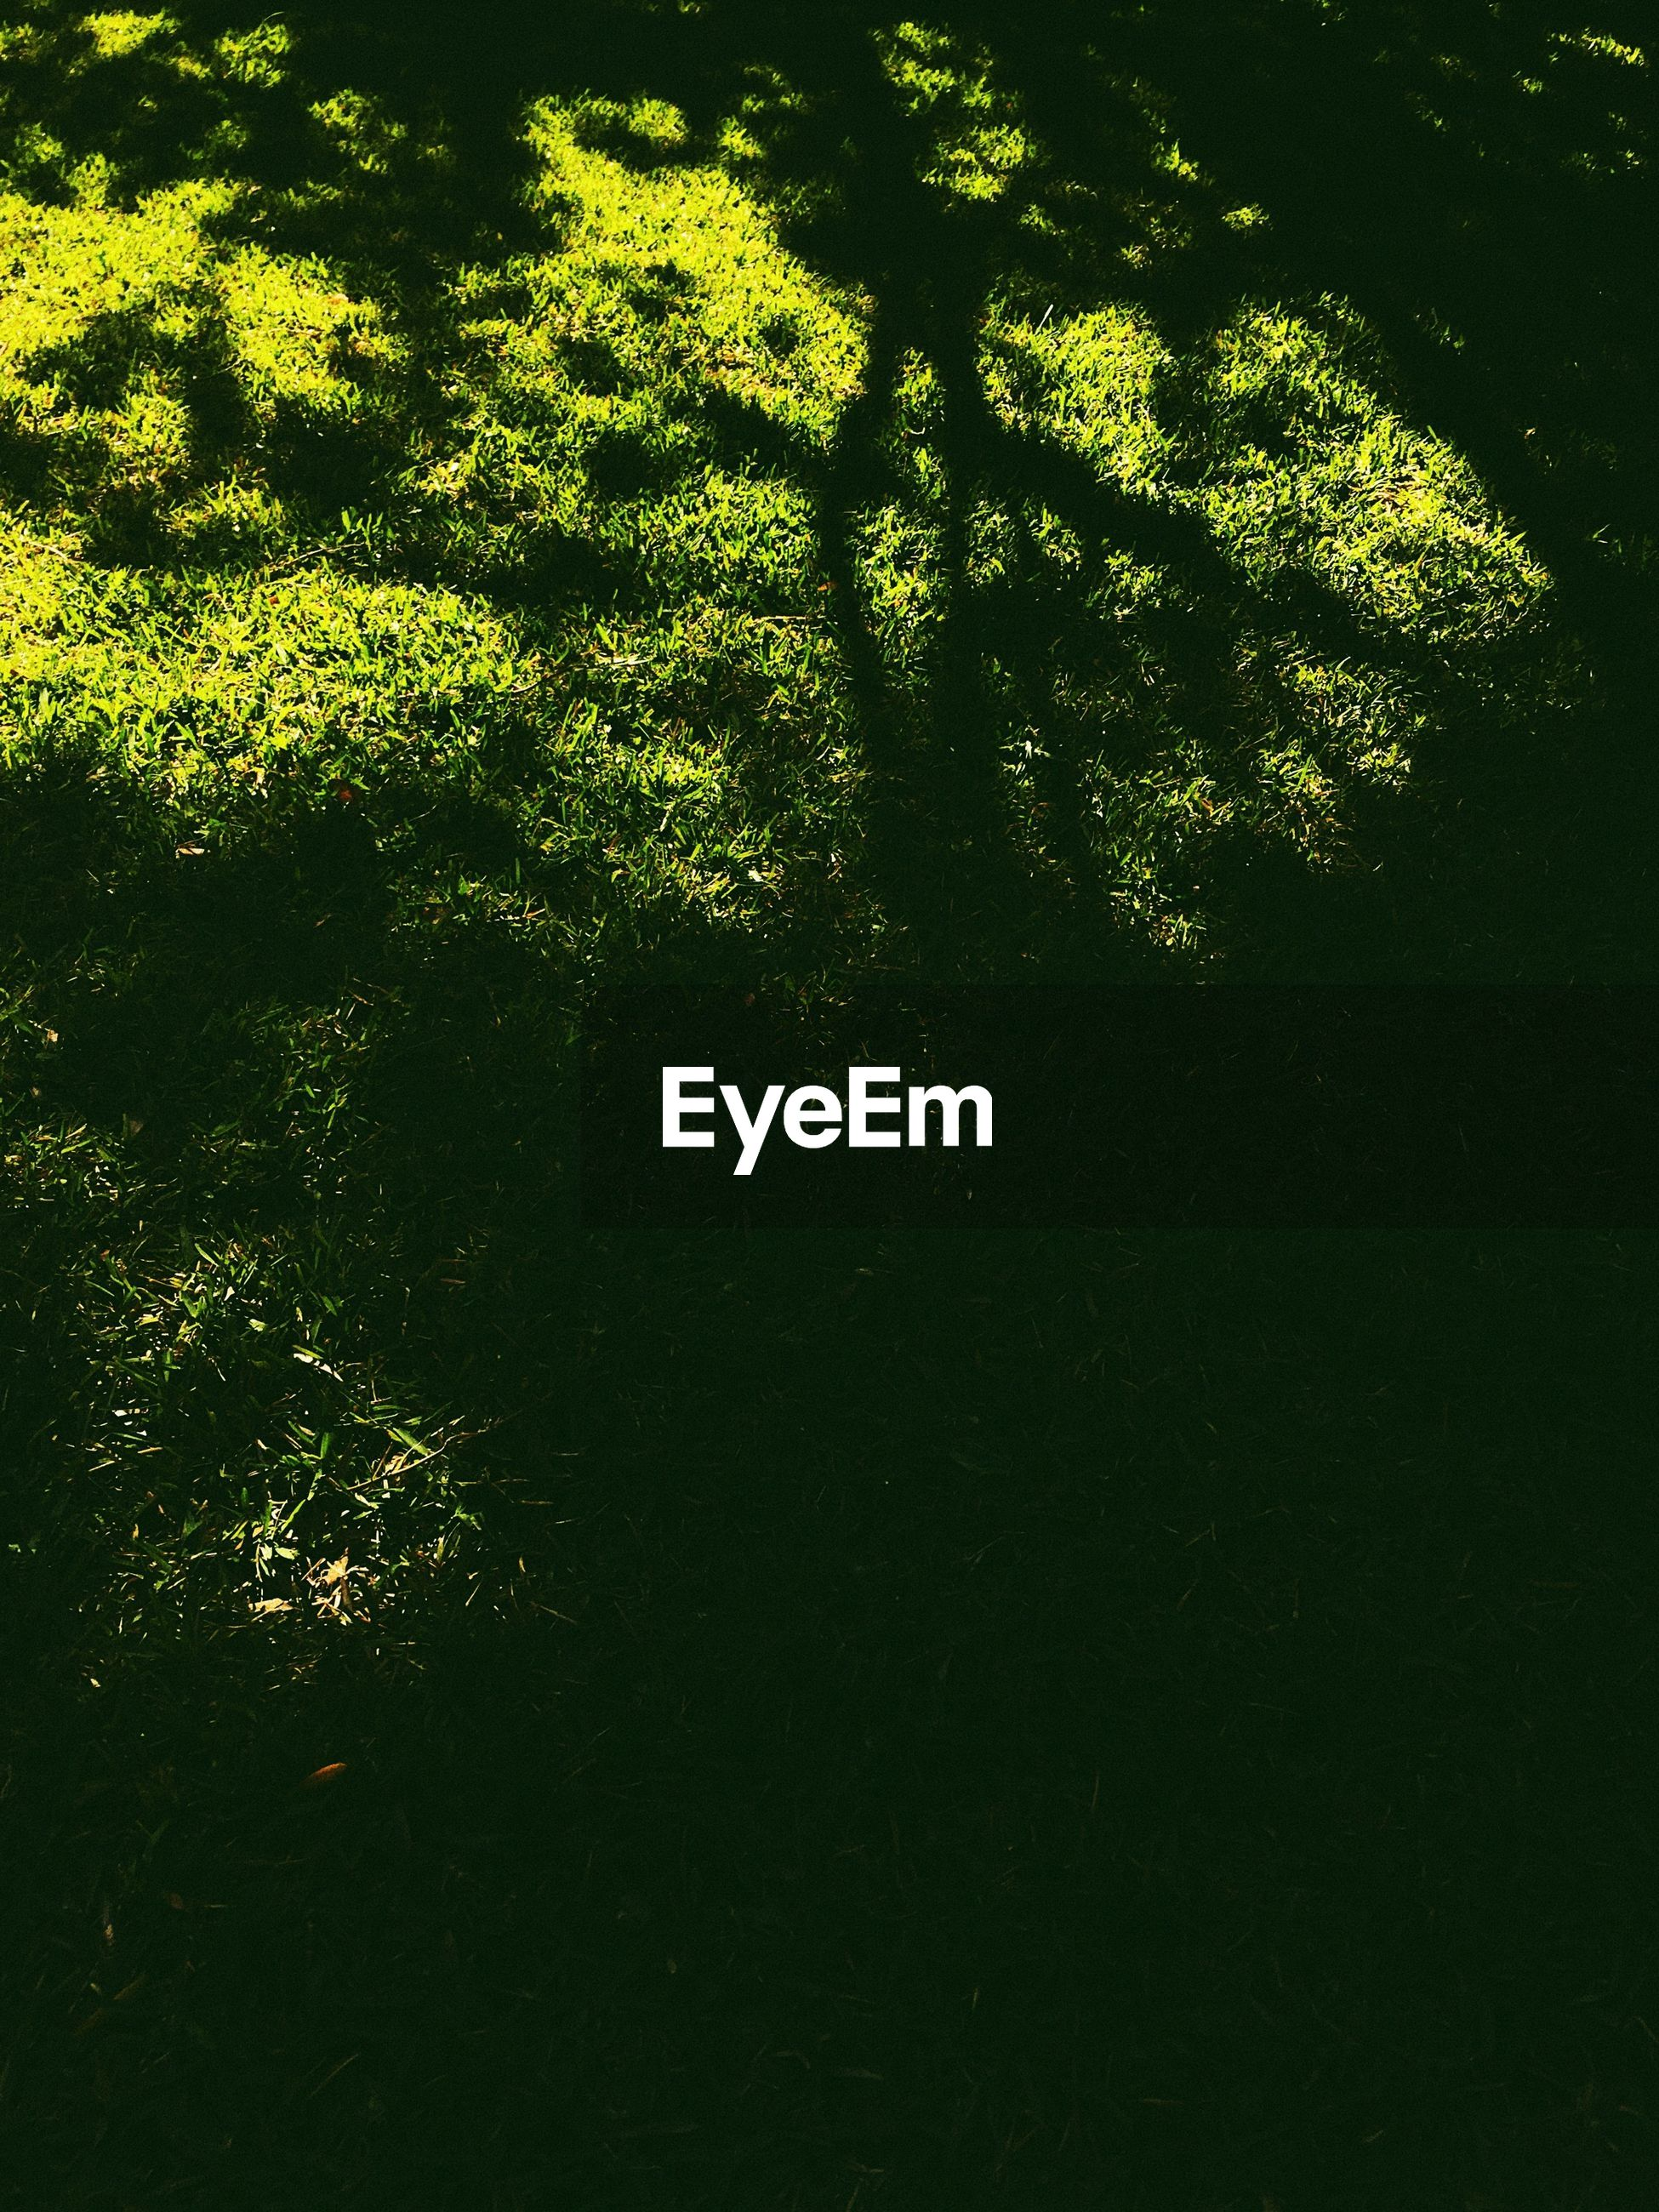 HIGH ANGLE VIEW OF TREES ON GRASS